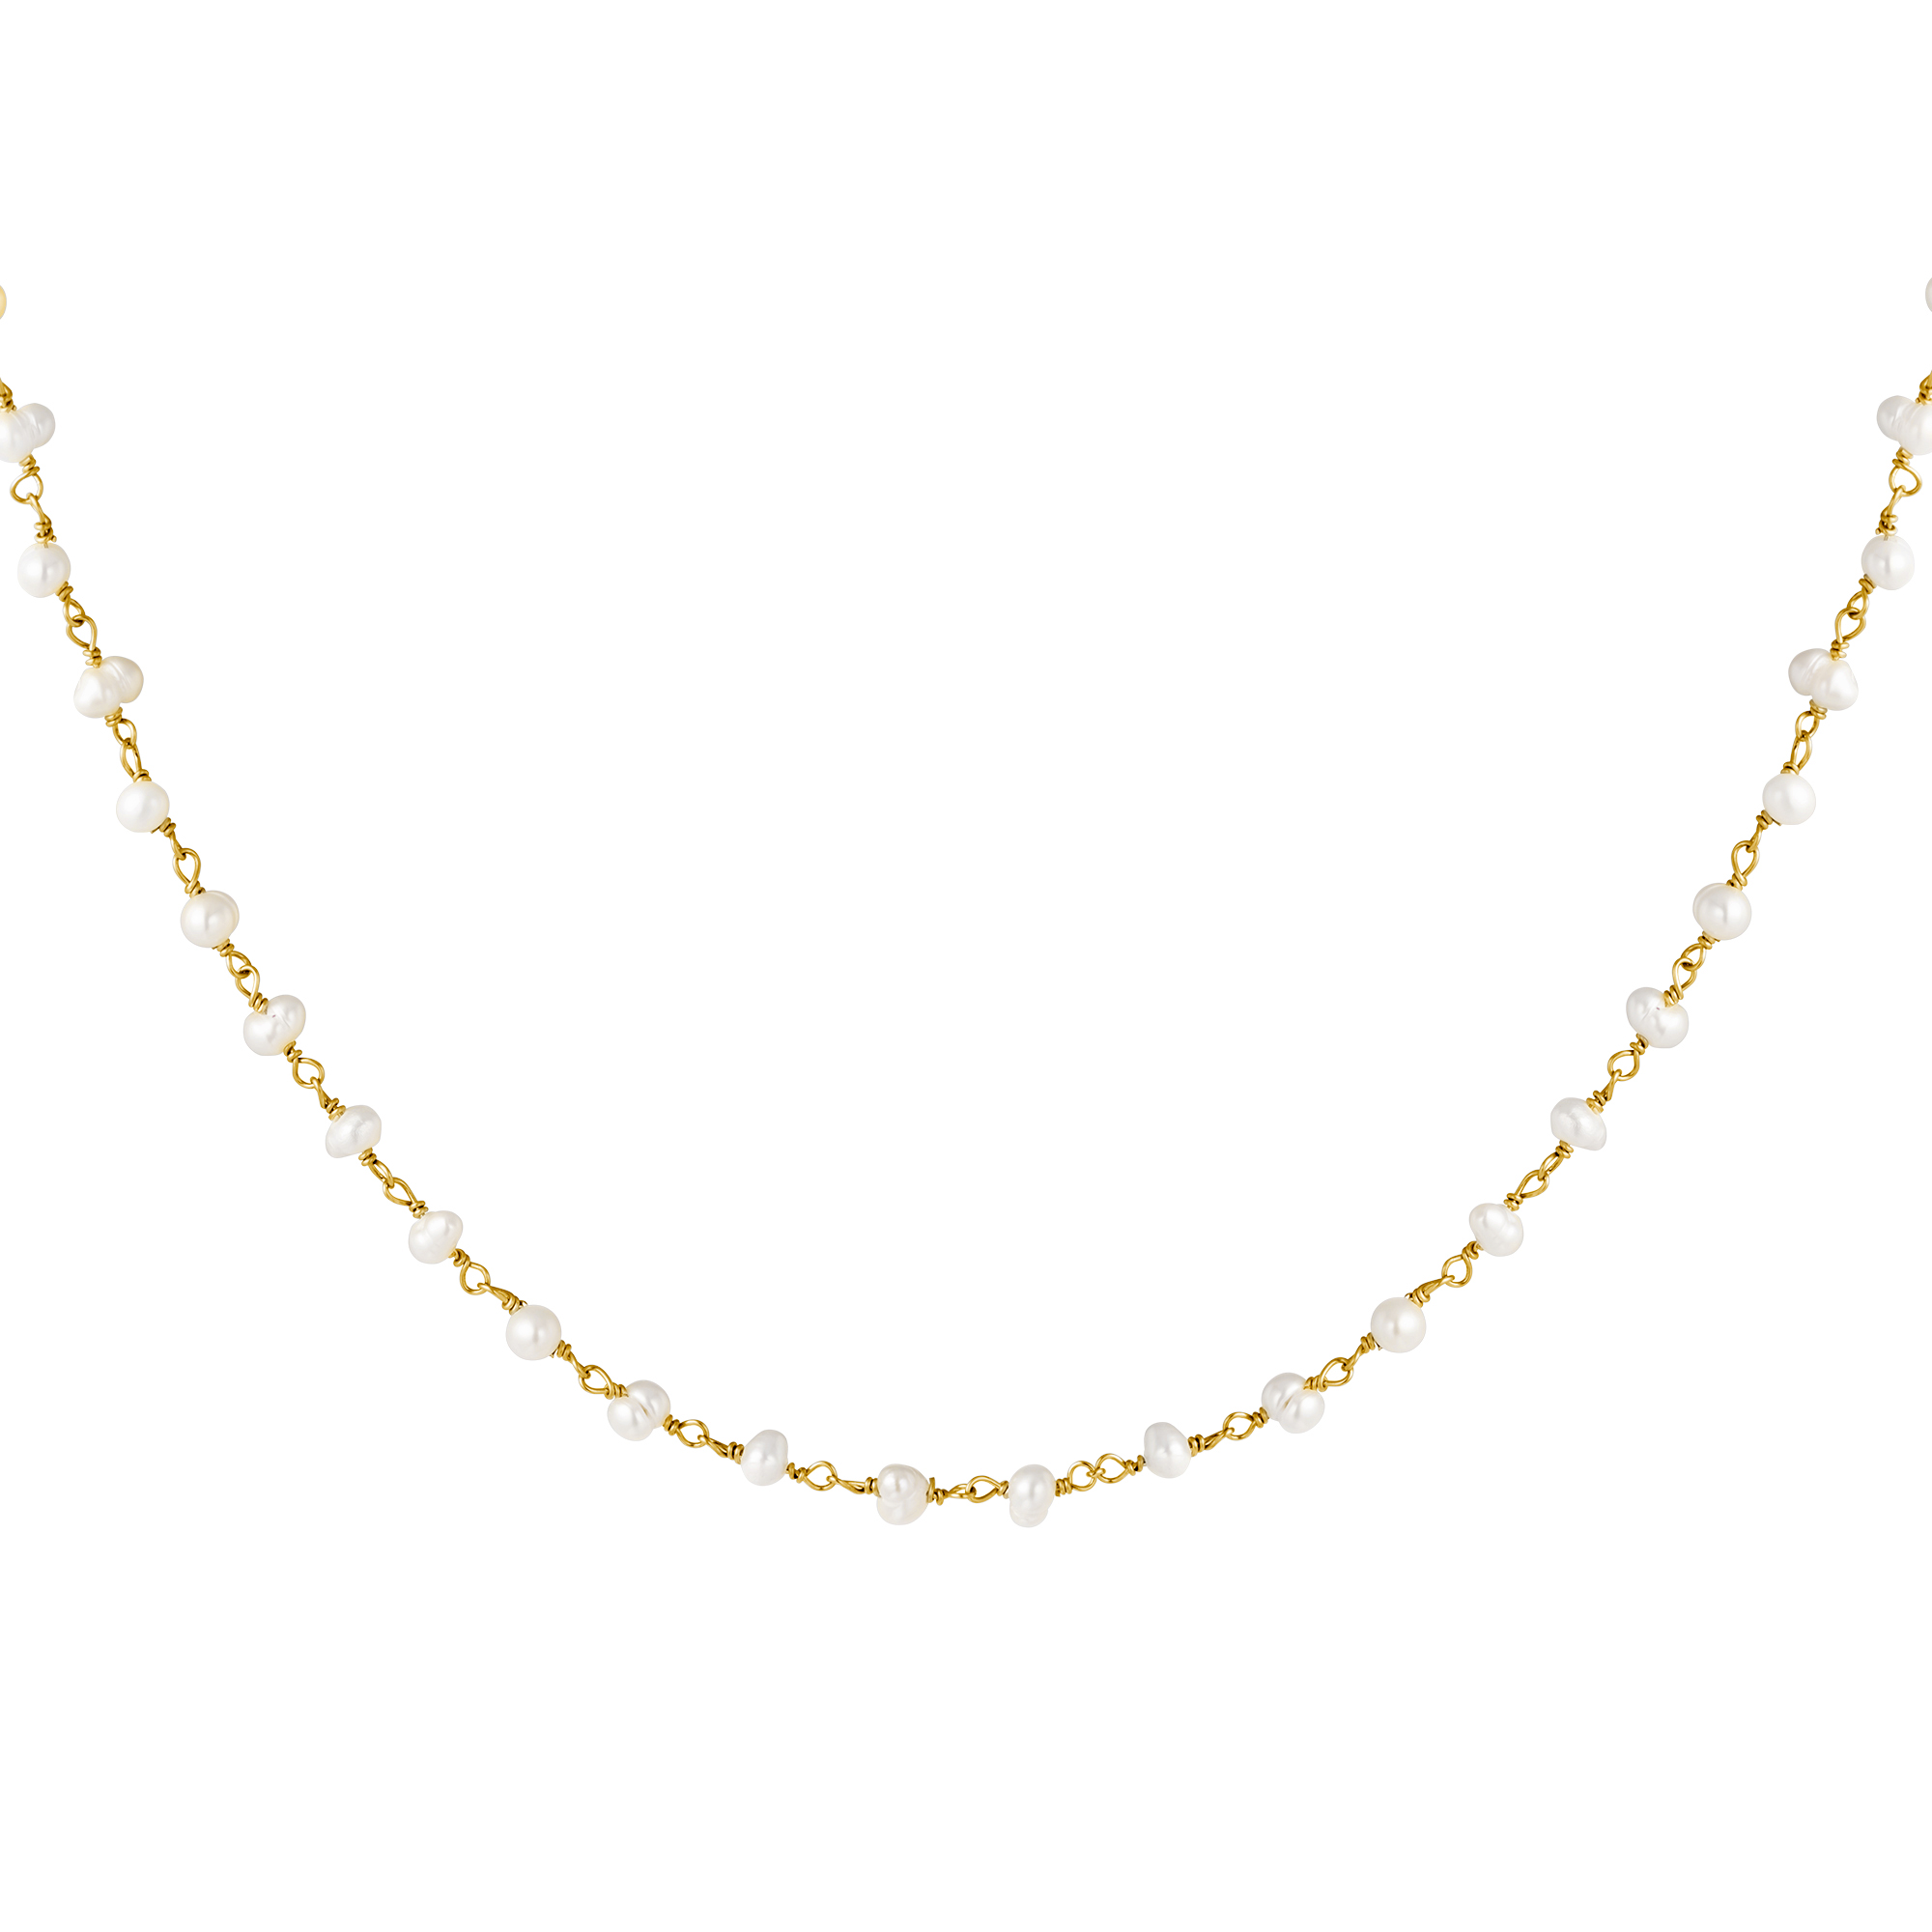 Ketting Chain of Pearls